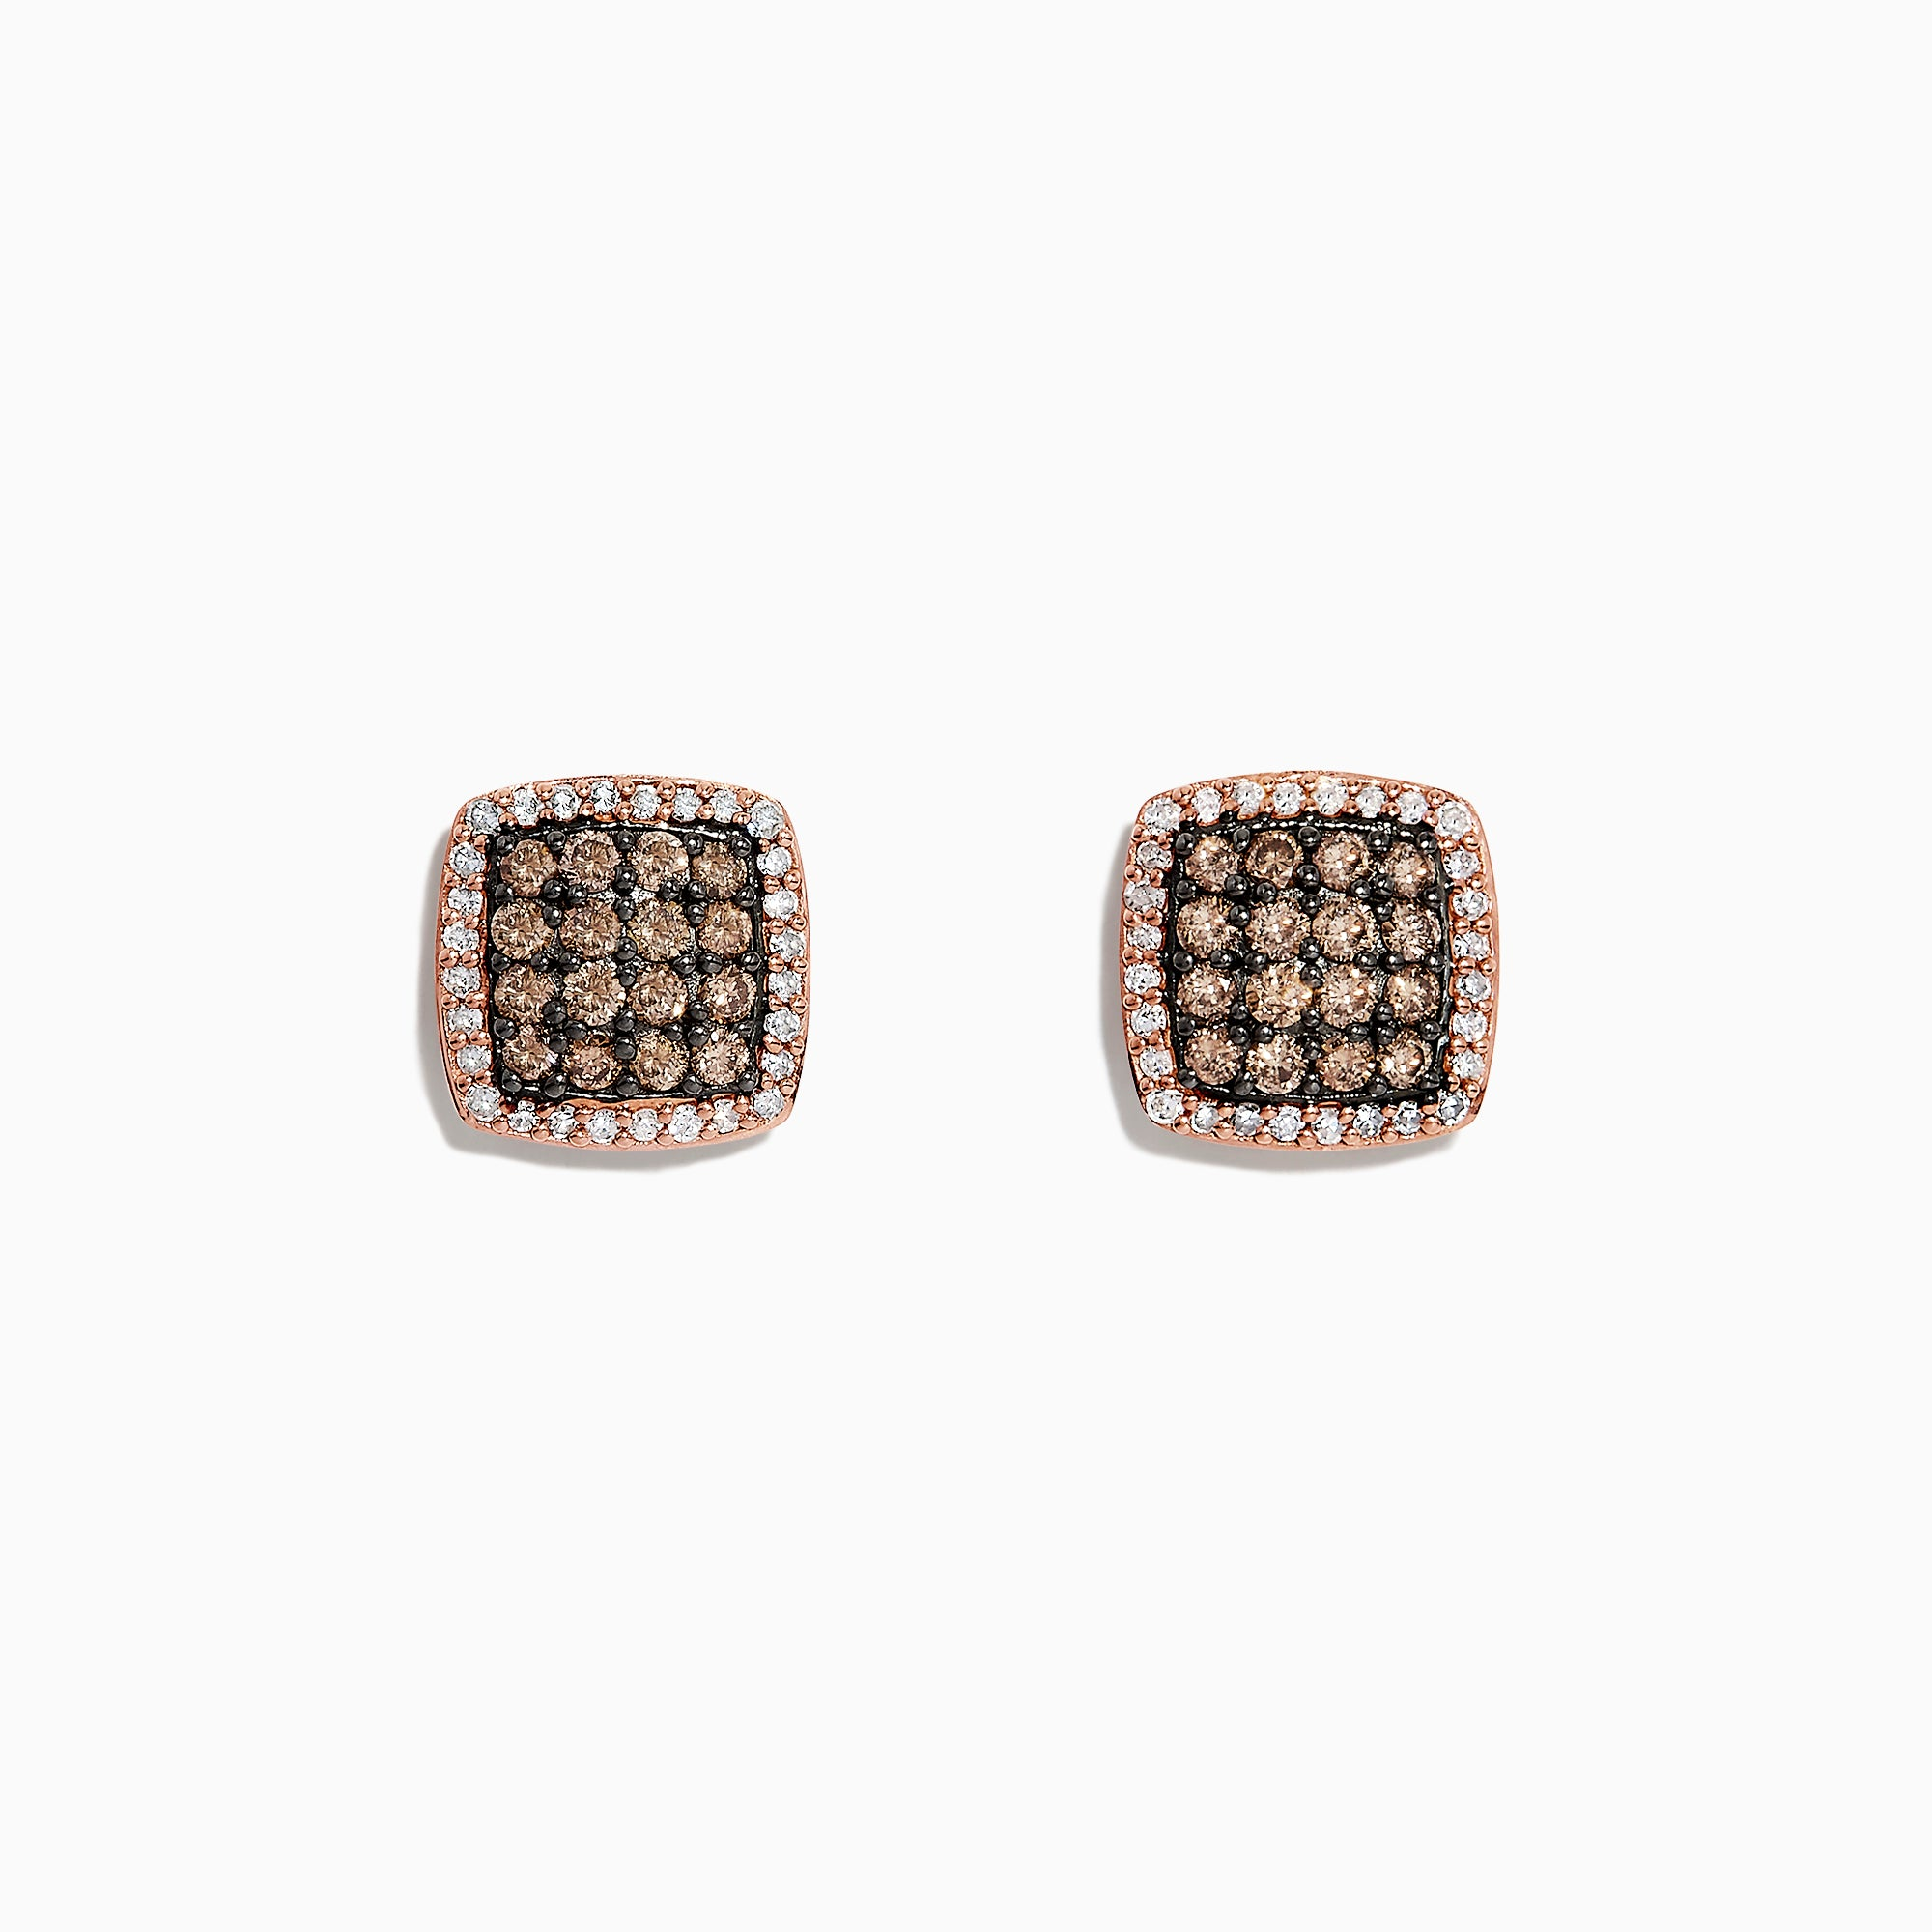 Effy 14K Rose Gold Espresso and White Diamond Stud Earrings, 0.71 TCW